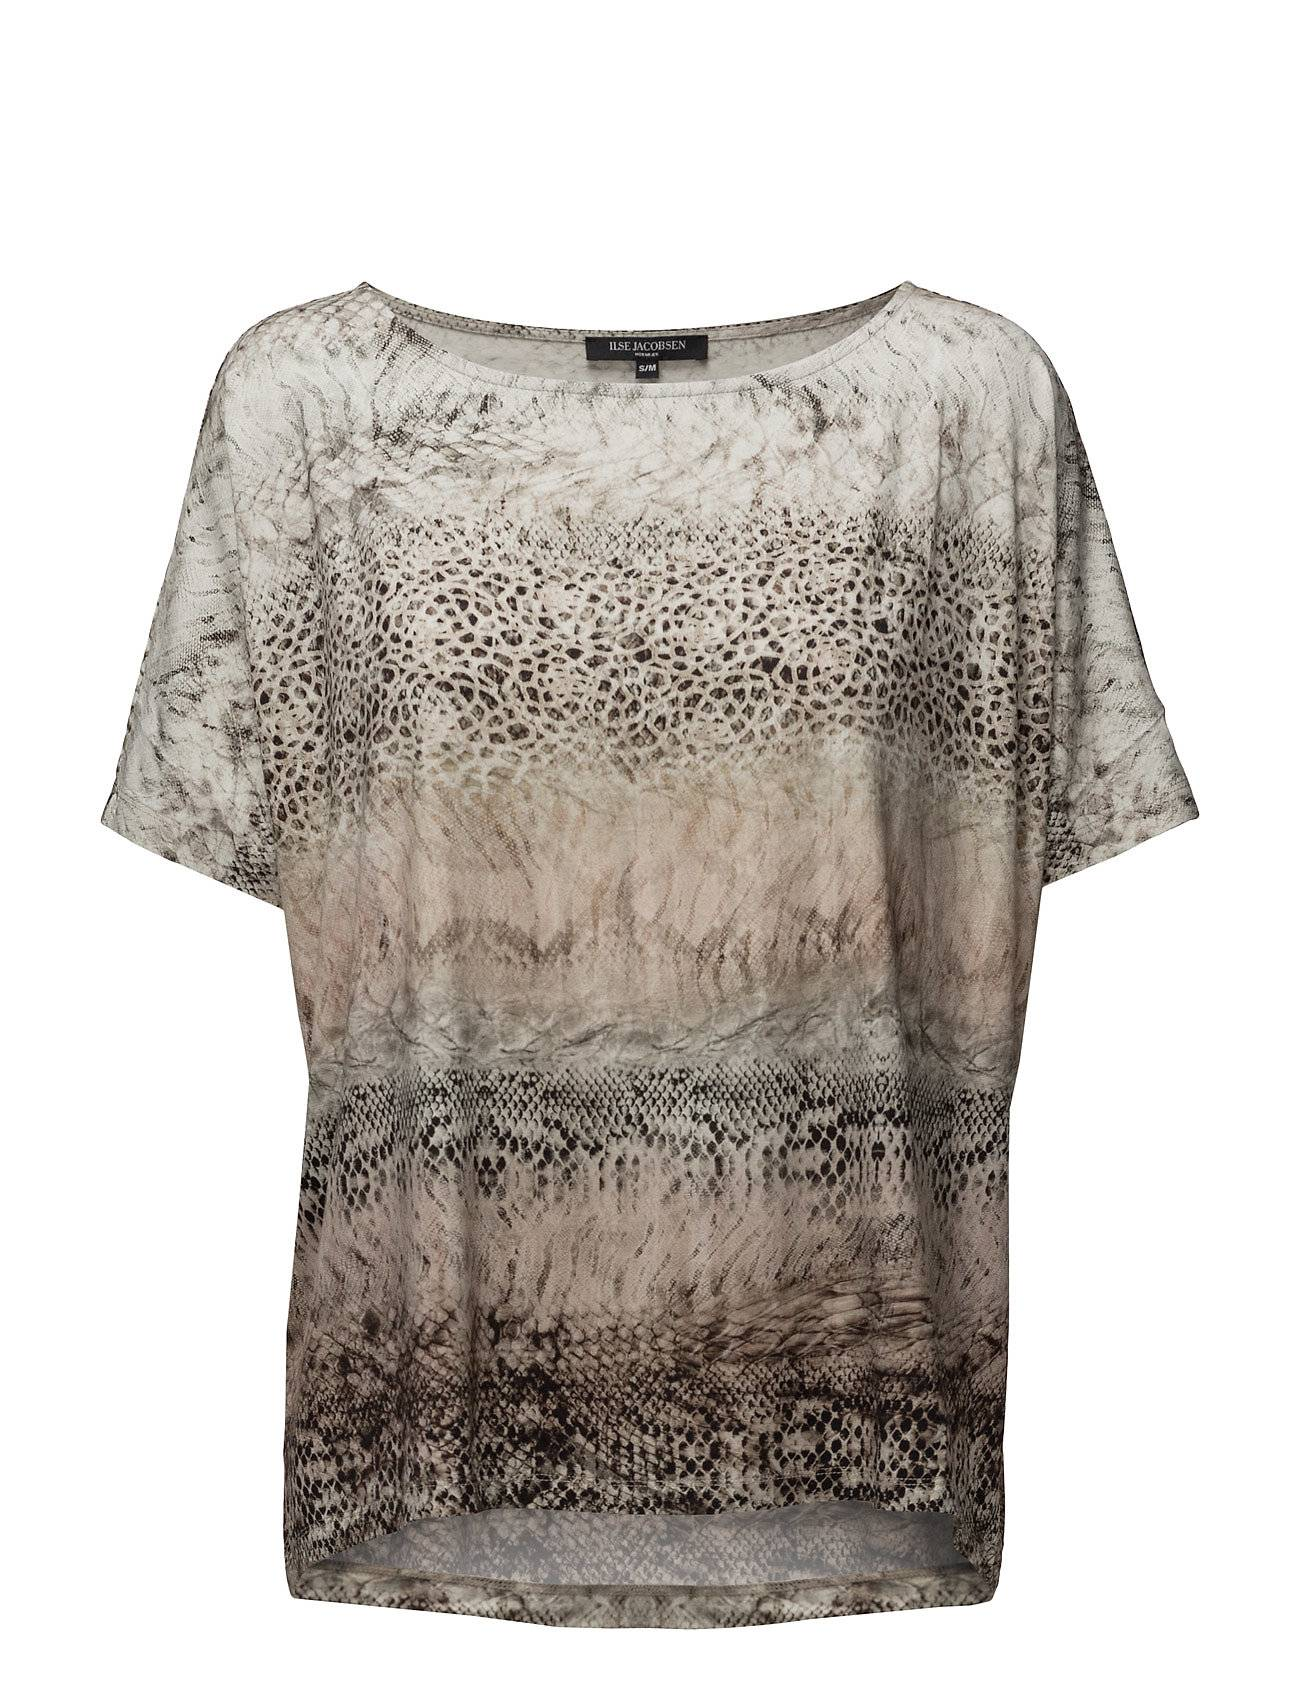 Ilse Jacobsen Womens Oversize Animal Blouse